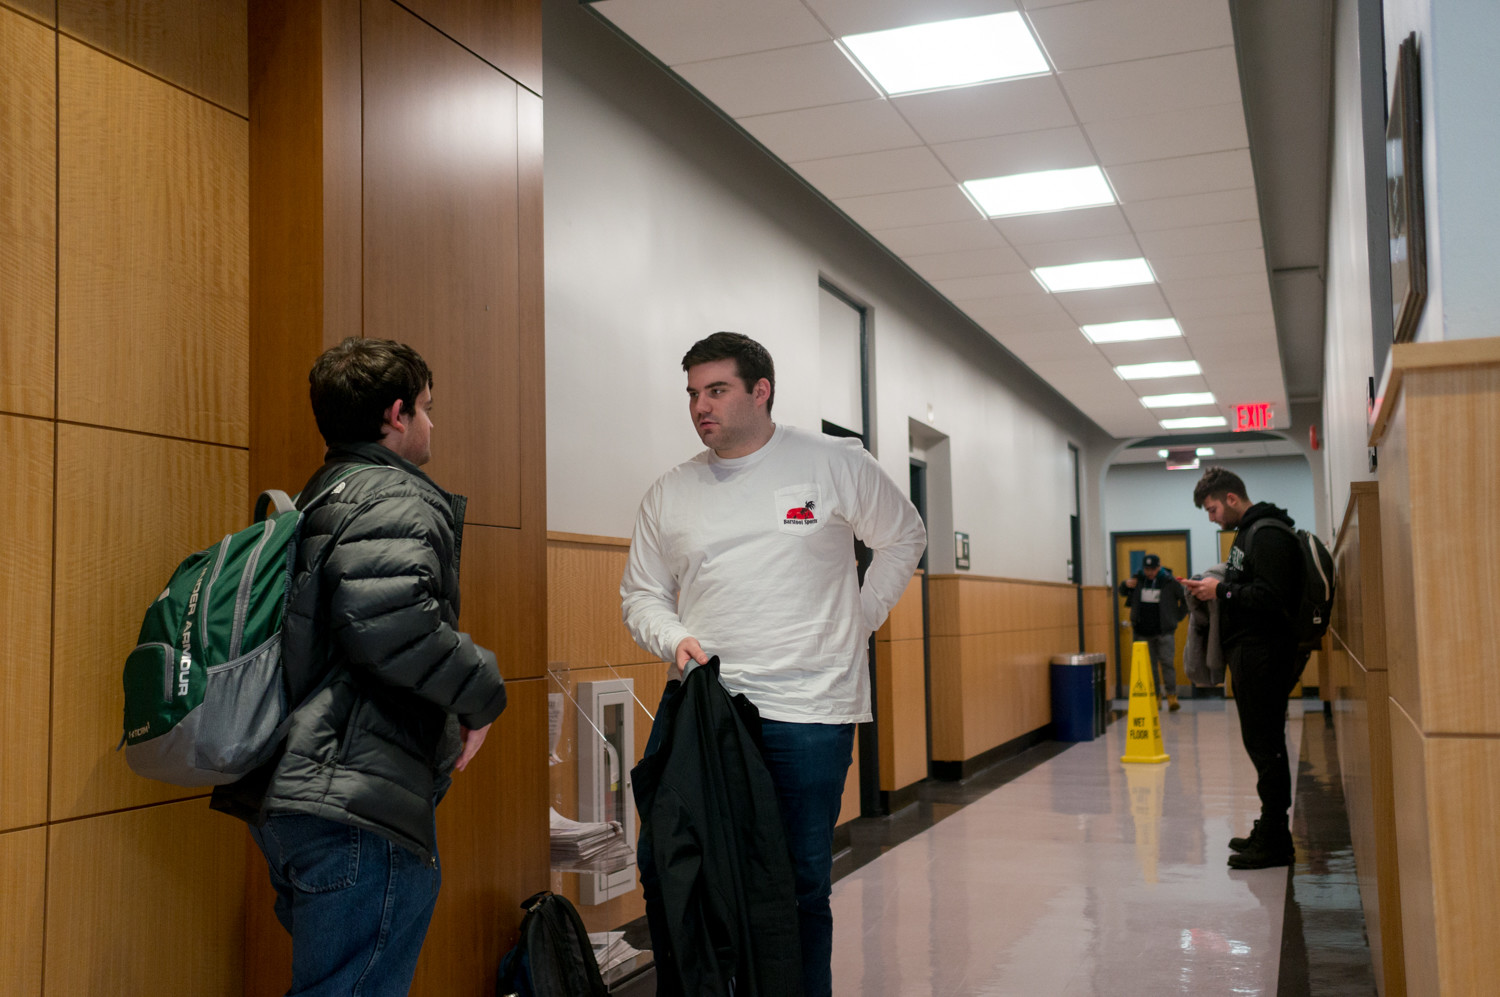 Manhattan College students talk in between classes in De La Salle Hall where many business classes are held. The school of business will be renamed The O'Malley School of Business, thanks to a $25 million donation by Thomas O'Malley.